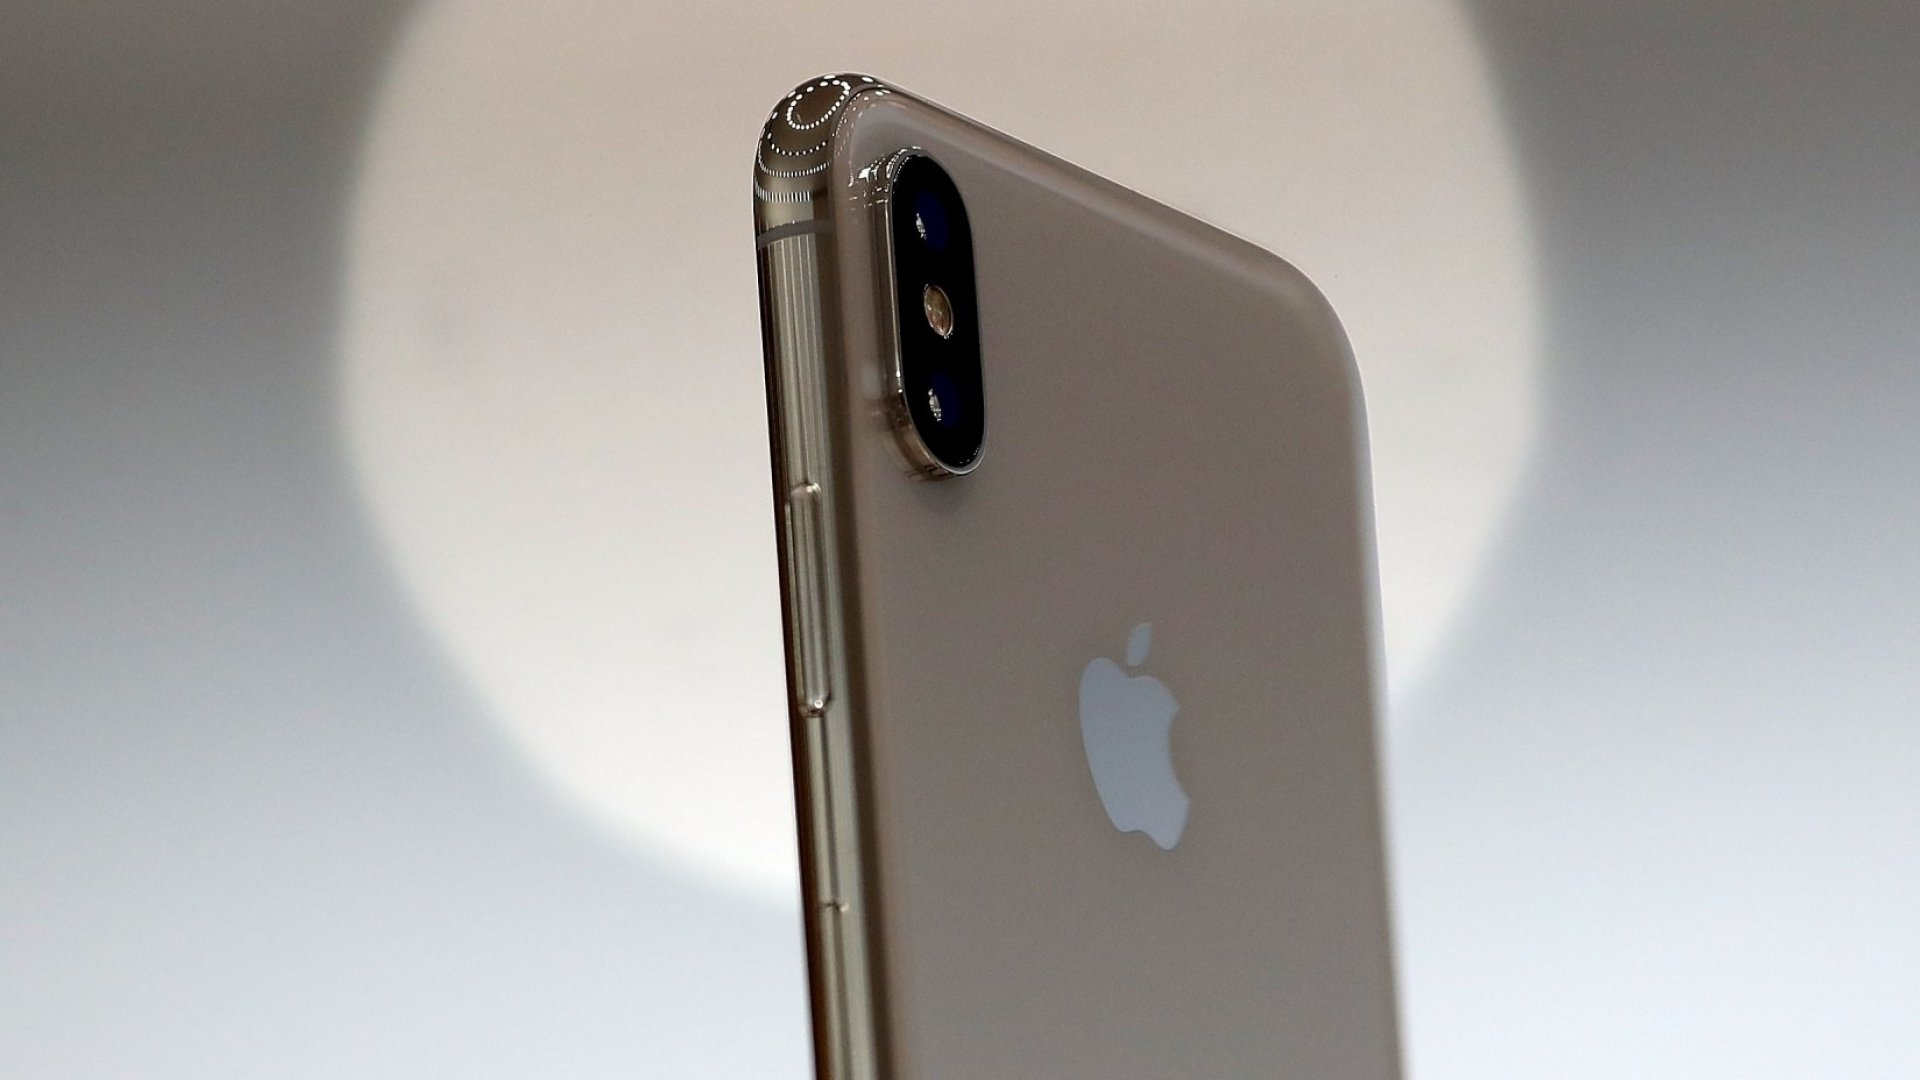 In a Shocking Announcement, Apple Reveals Hidden Costs for Expensive New iPhone X